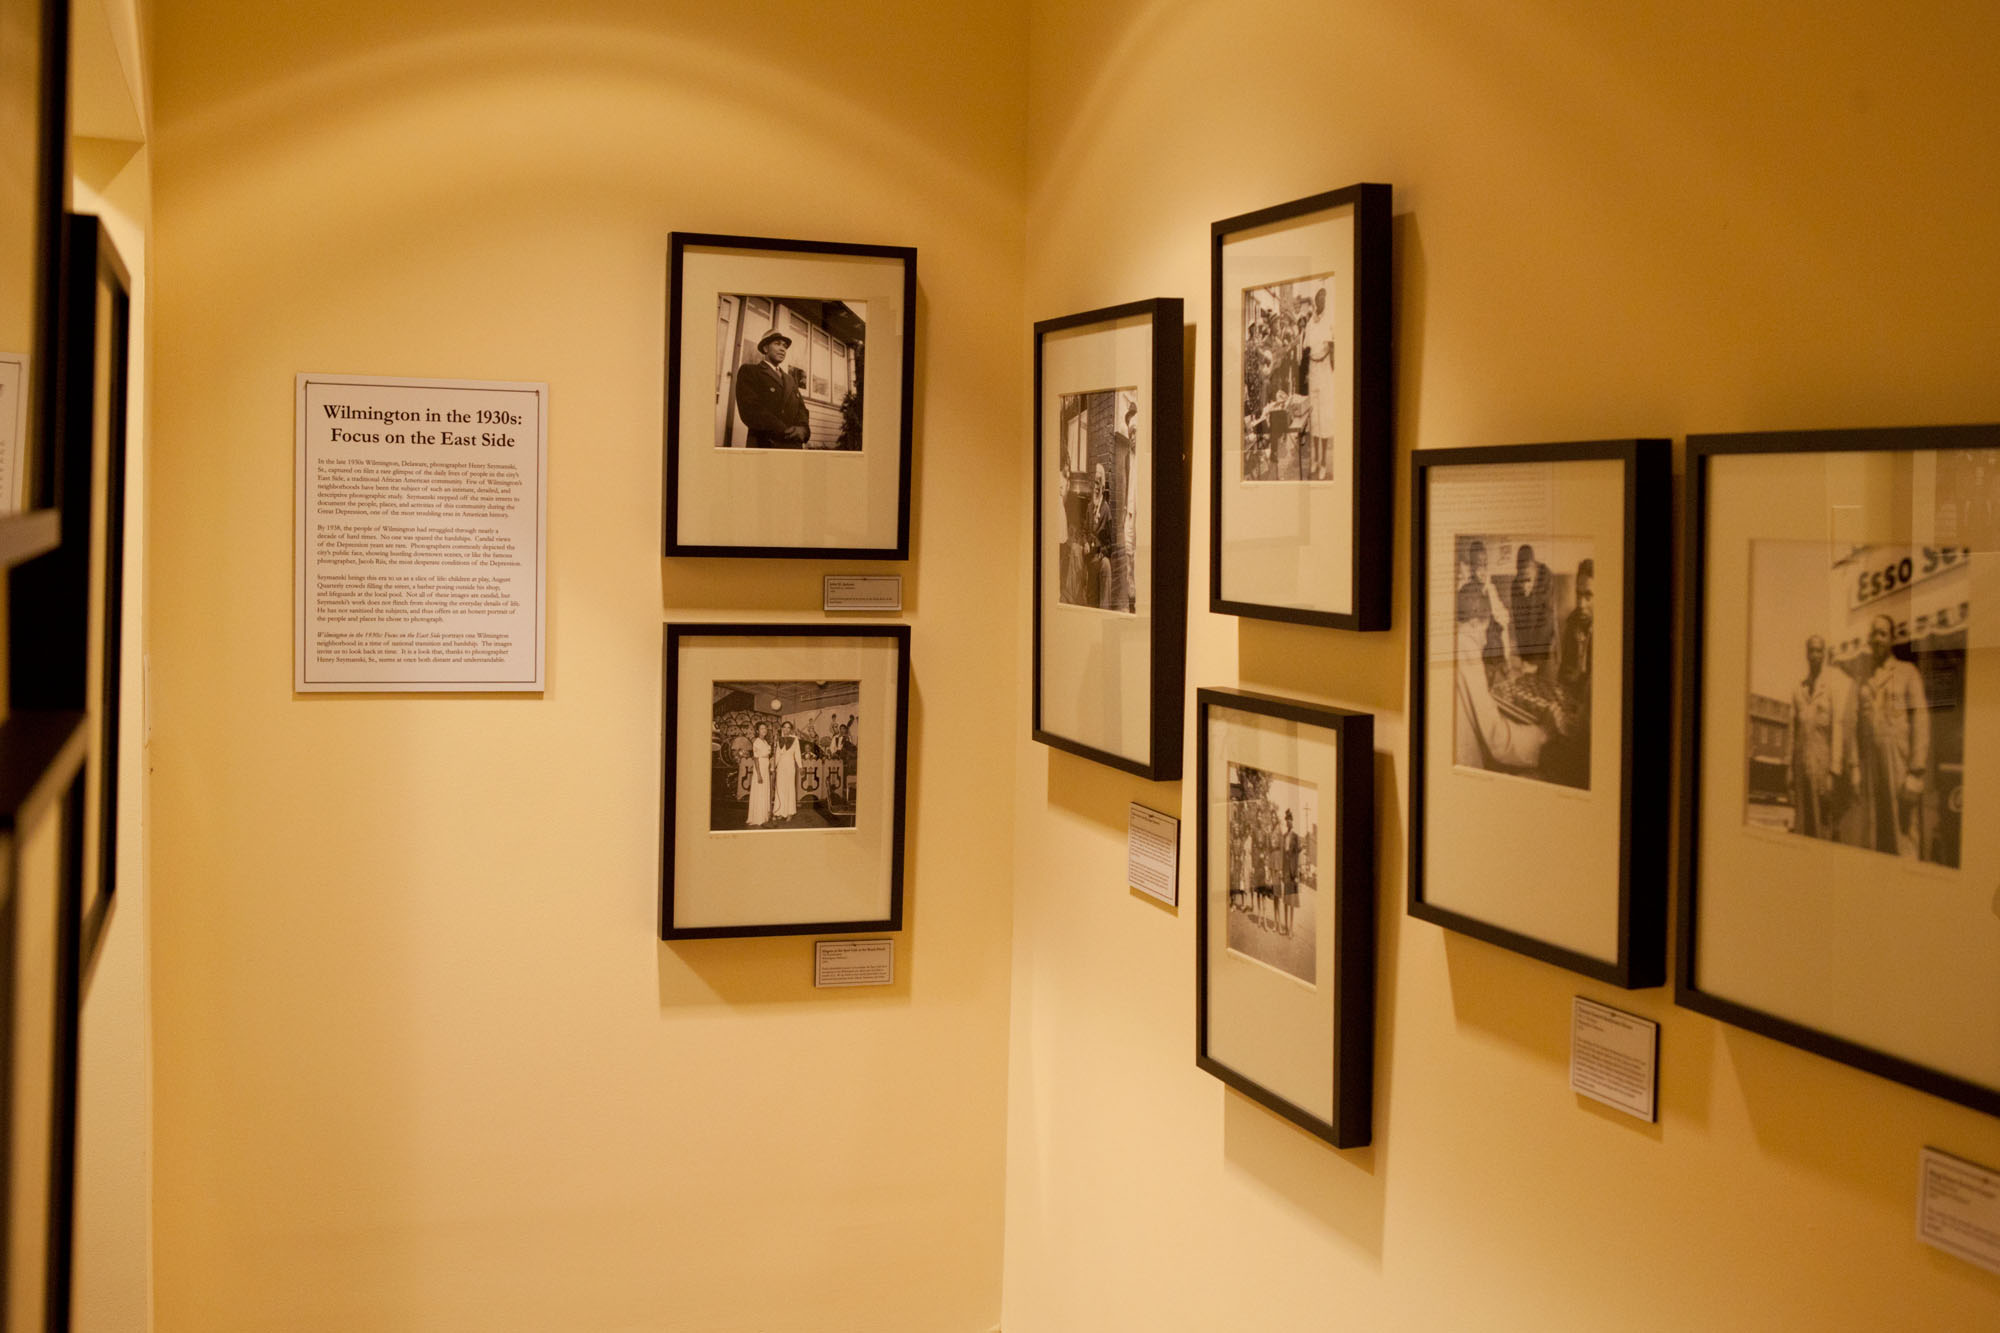 On Display: Photos from the Delaware Historical Society showcased during the 3rd Annual Black History Month Reception